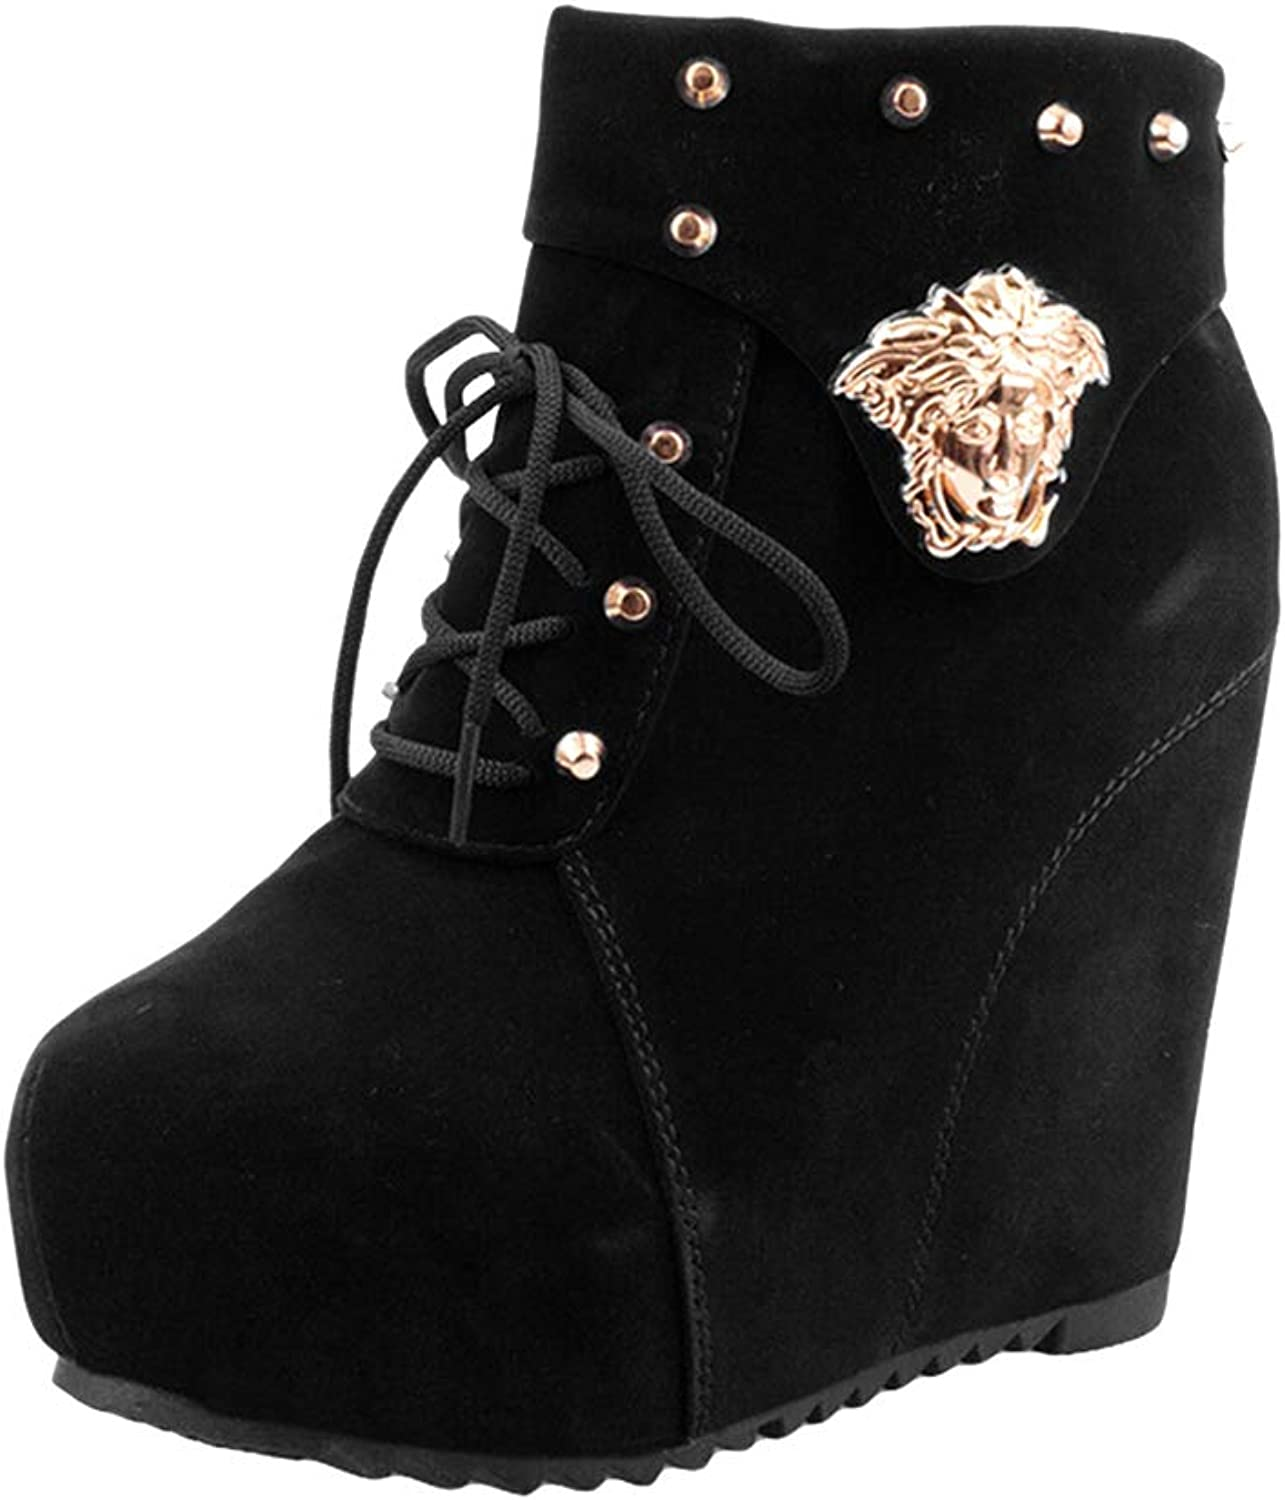 ONCEFIRST Women's Rivets Platform Hidden Wedge Boot Ankle Bootie